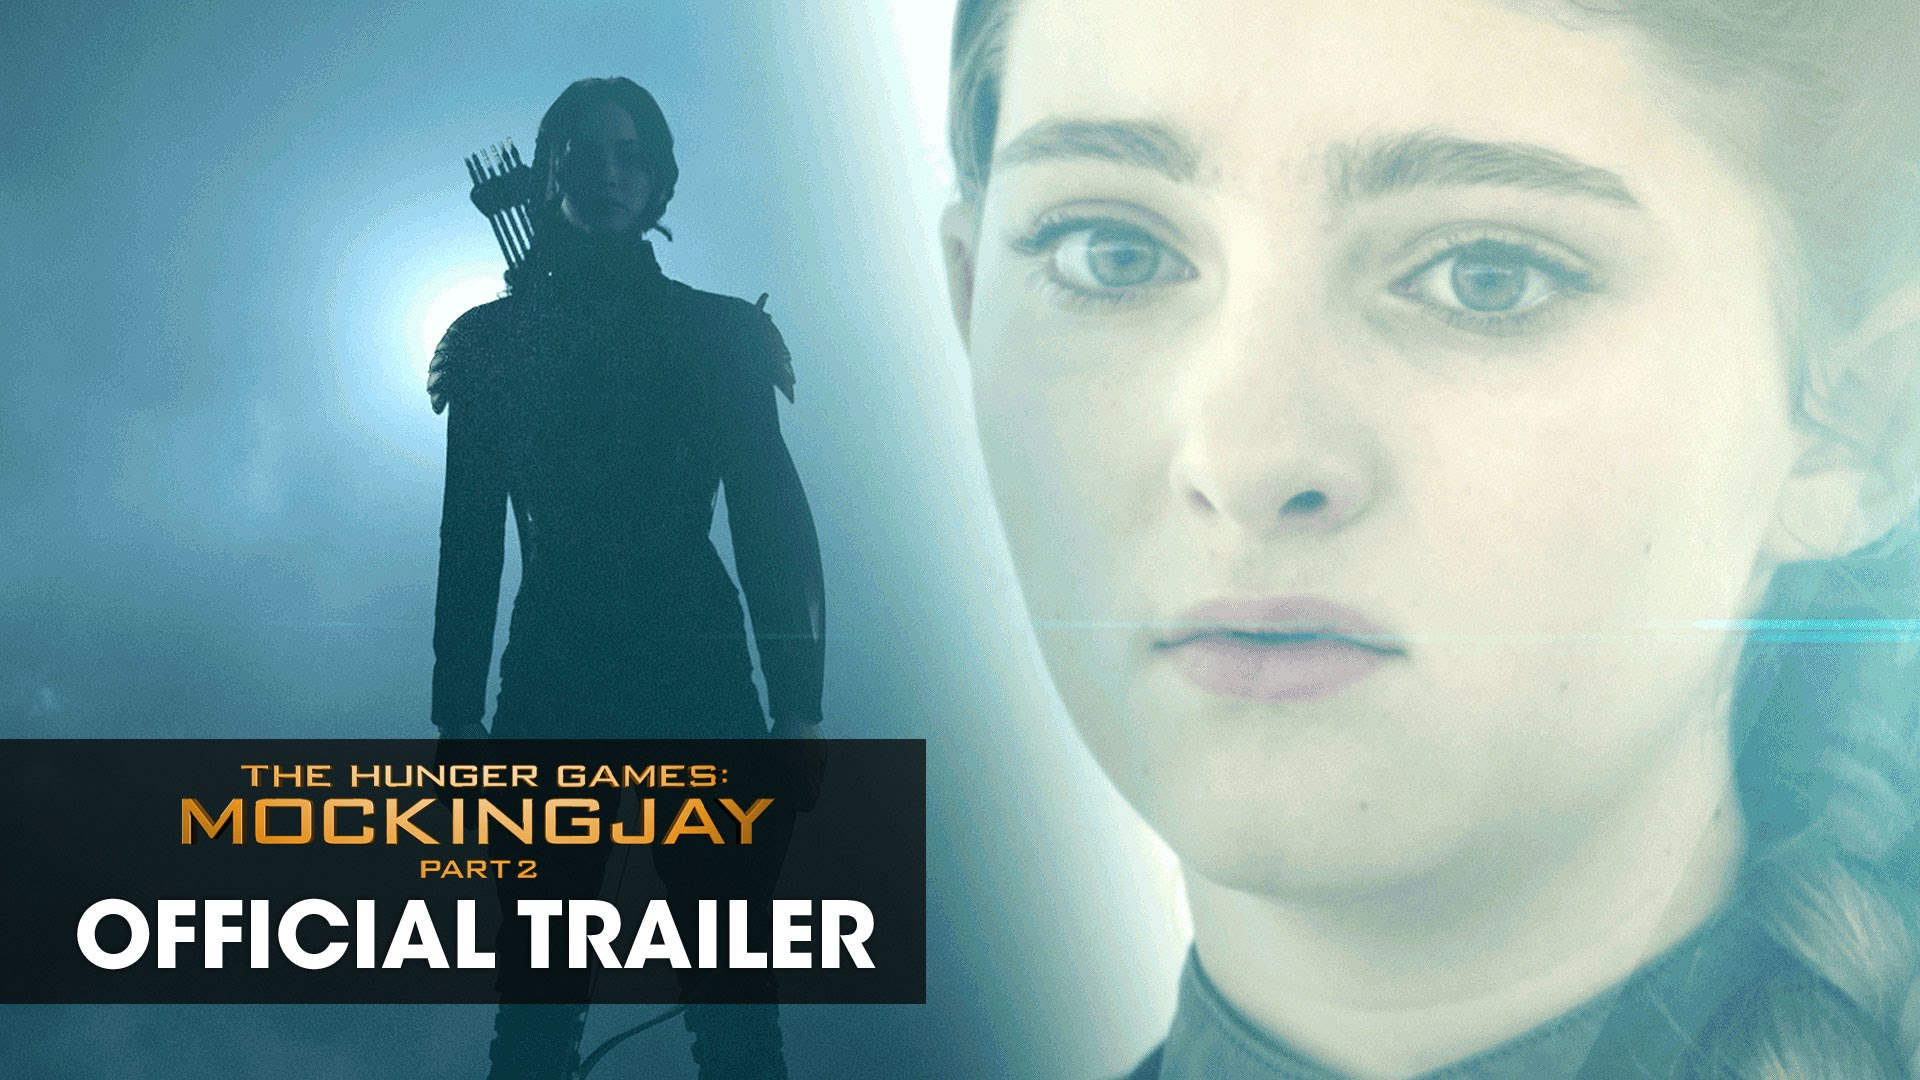 The Hunger Games: Mockingjay - Part 2 (2015) video/trailer